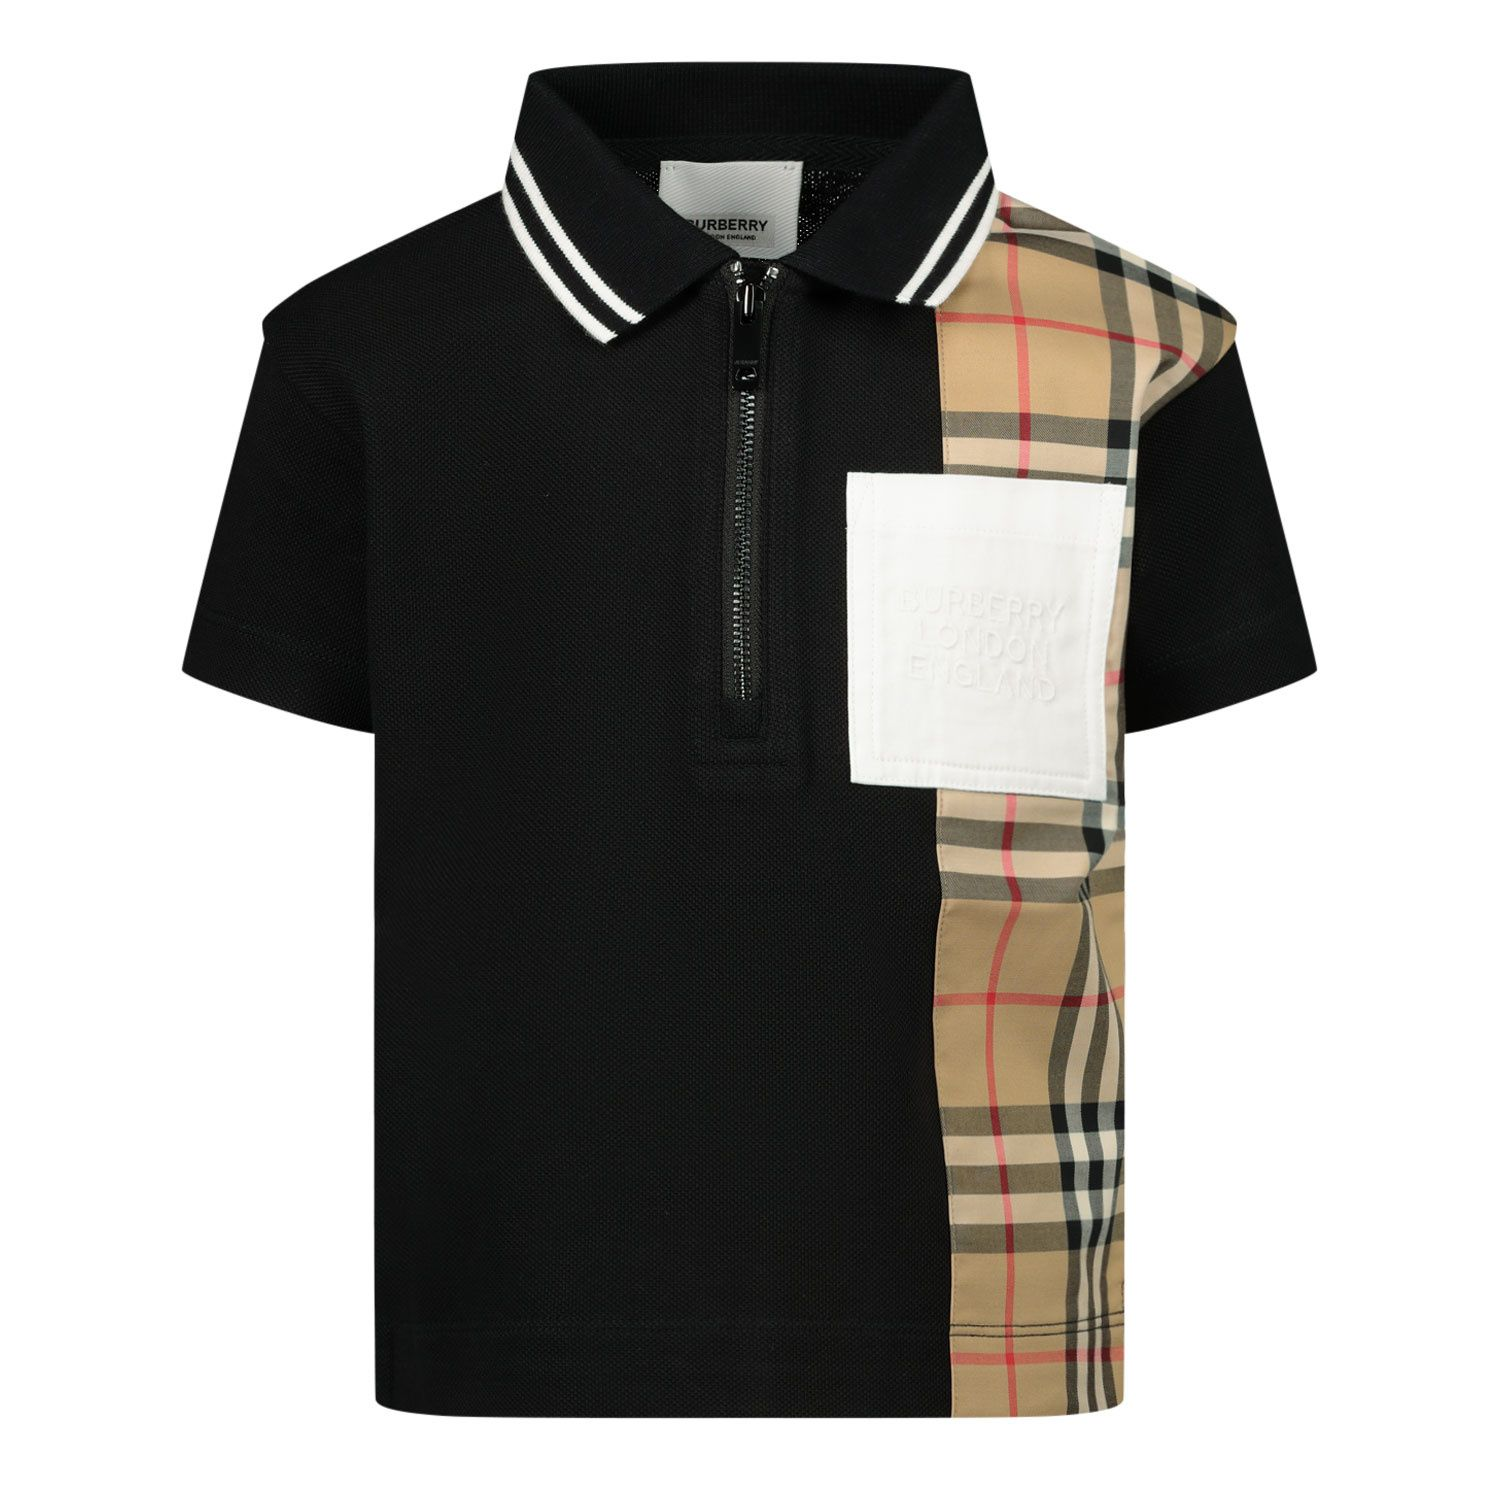 Picture of Burberry 8036420 baby poloshirt black